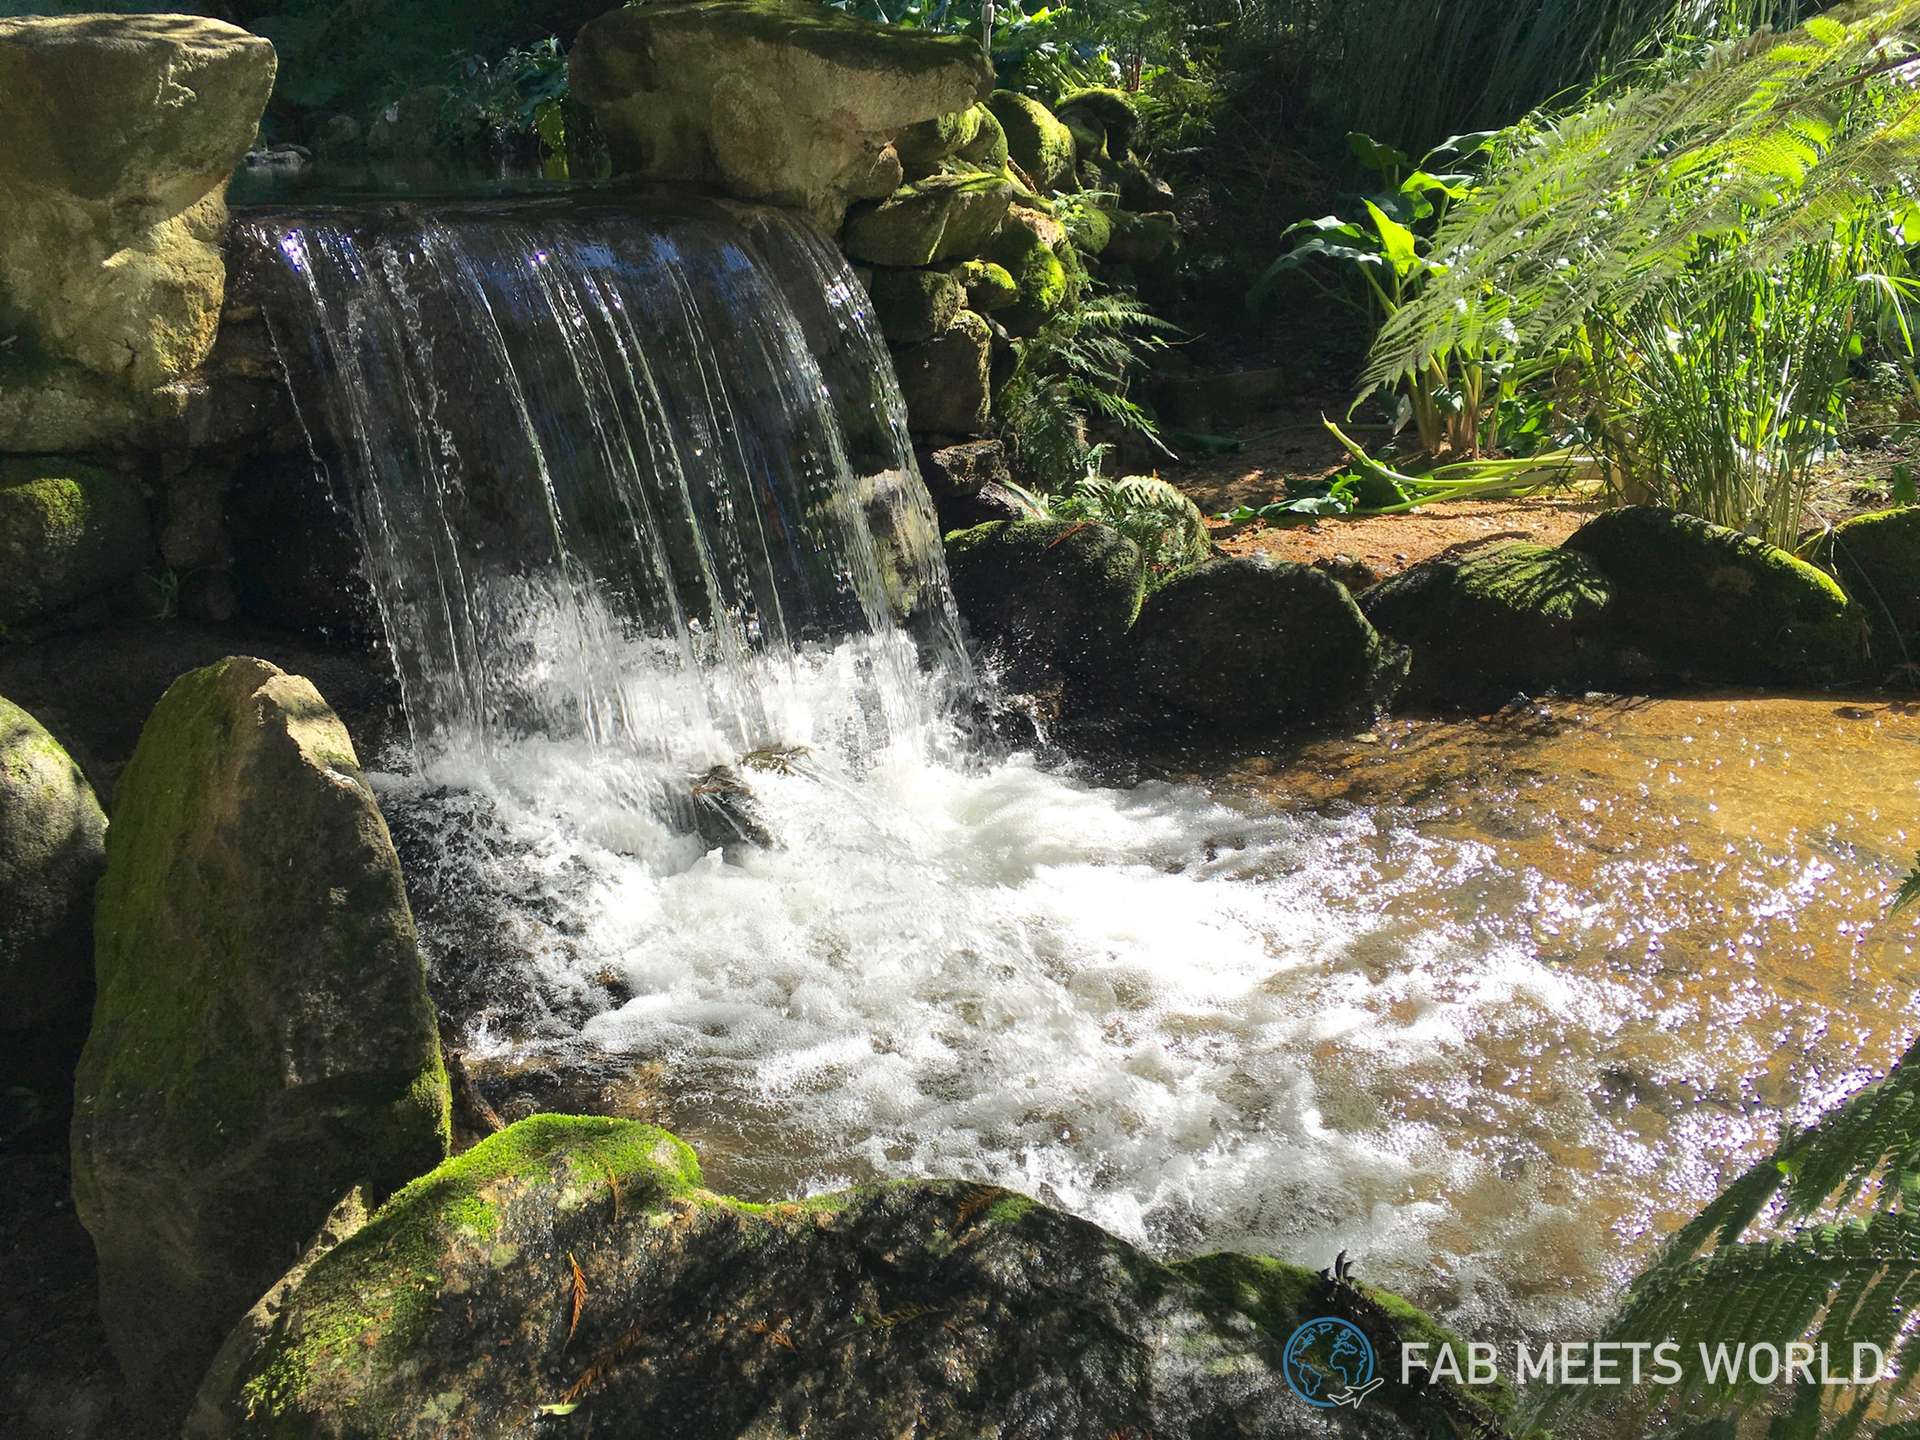 The Monserrate gardens are full of beautiful waterfalls like this